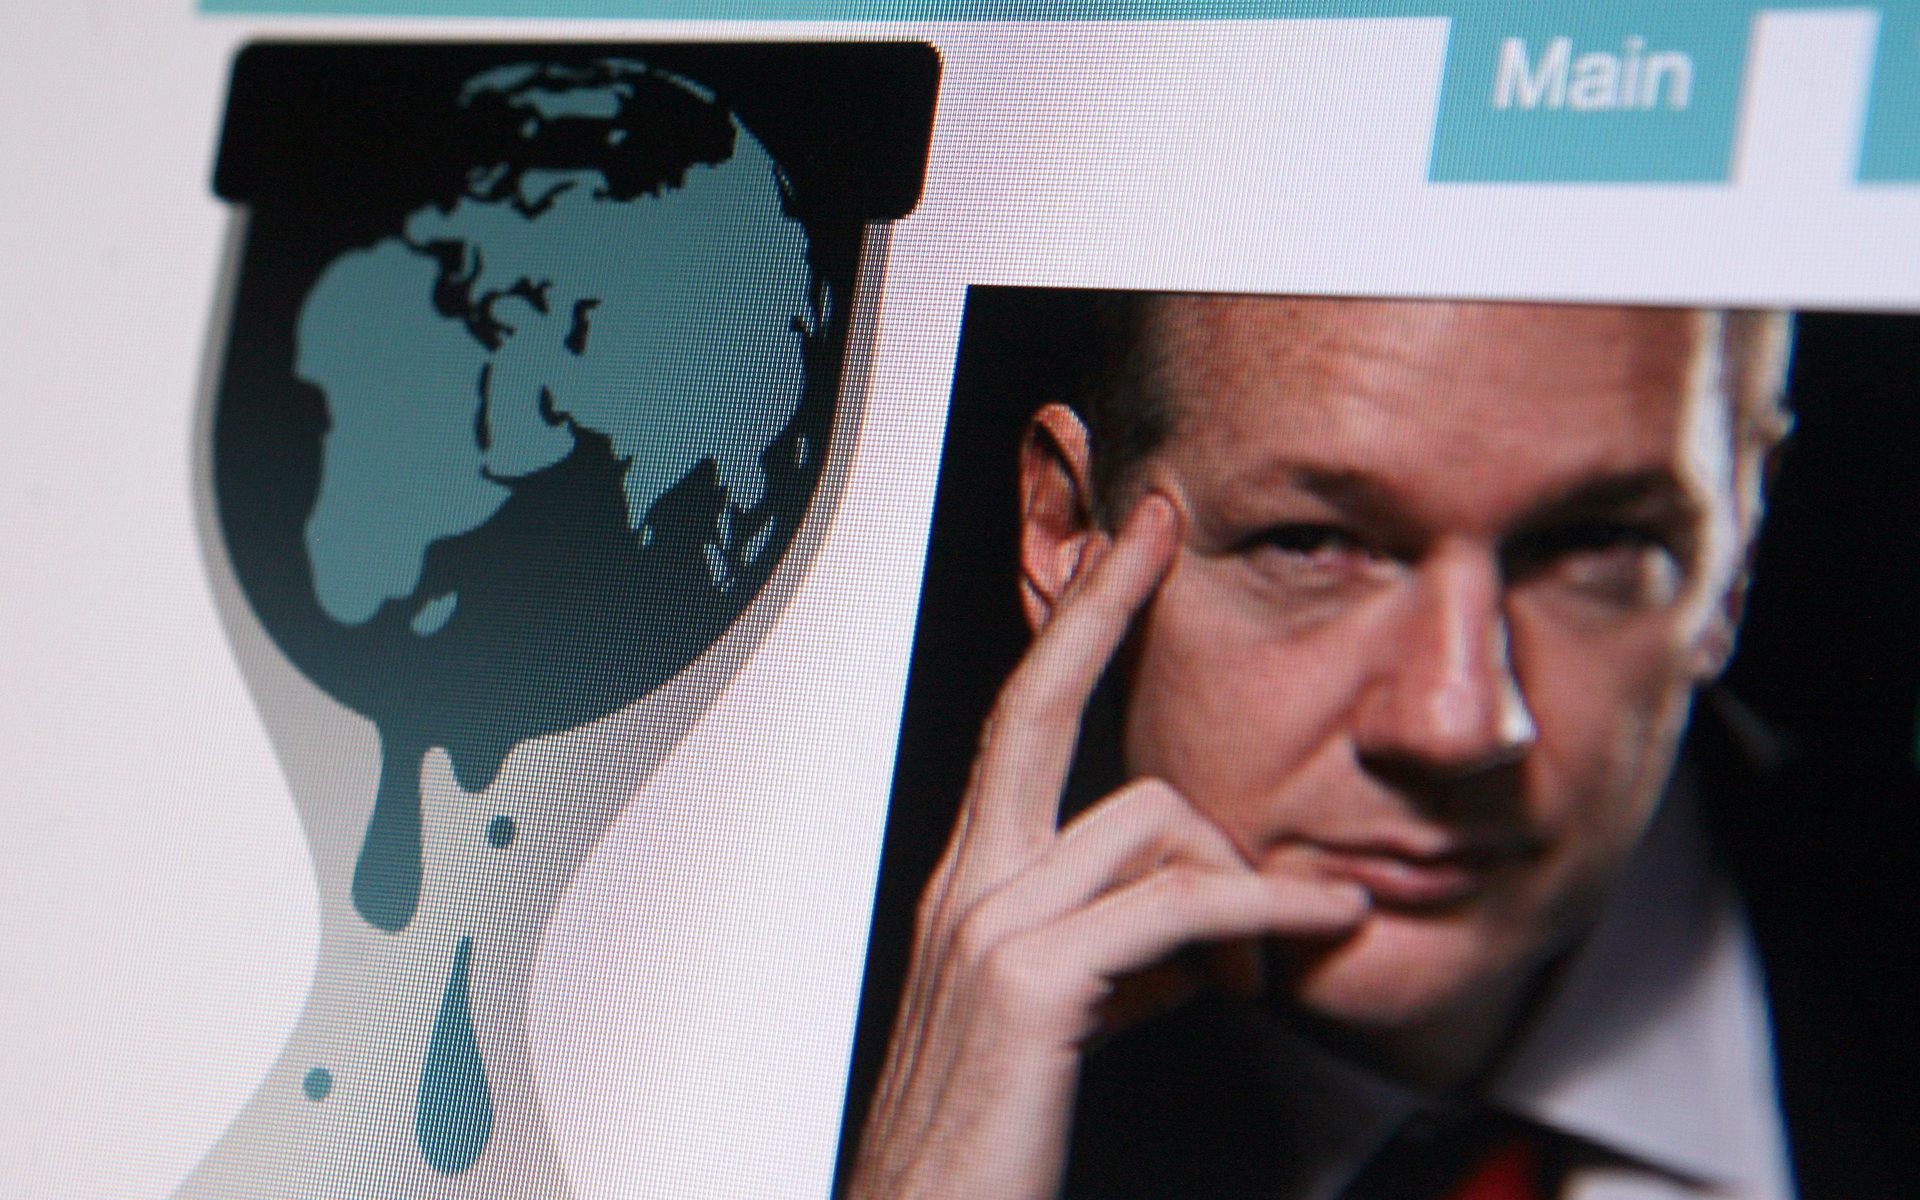 Army of lawyers prepares for Assange extradition battle